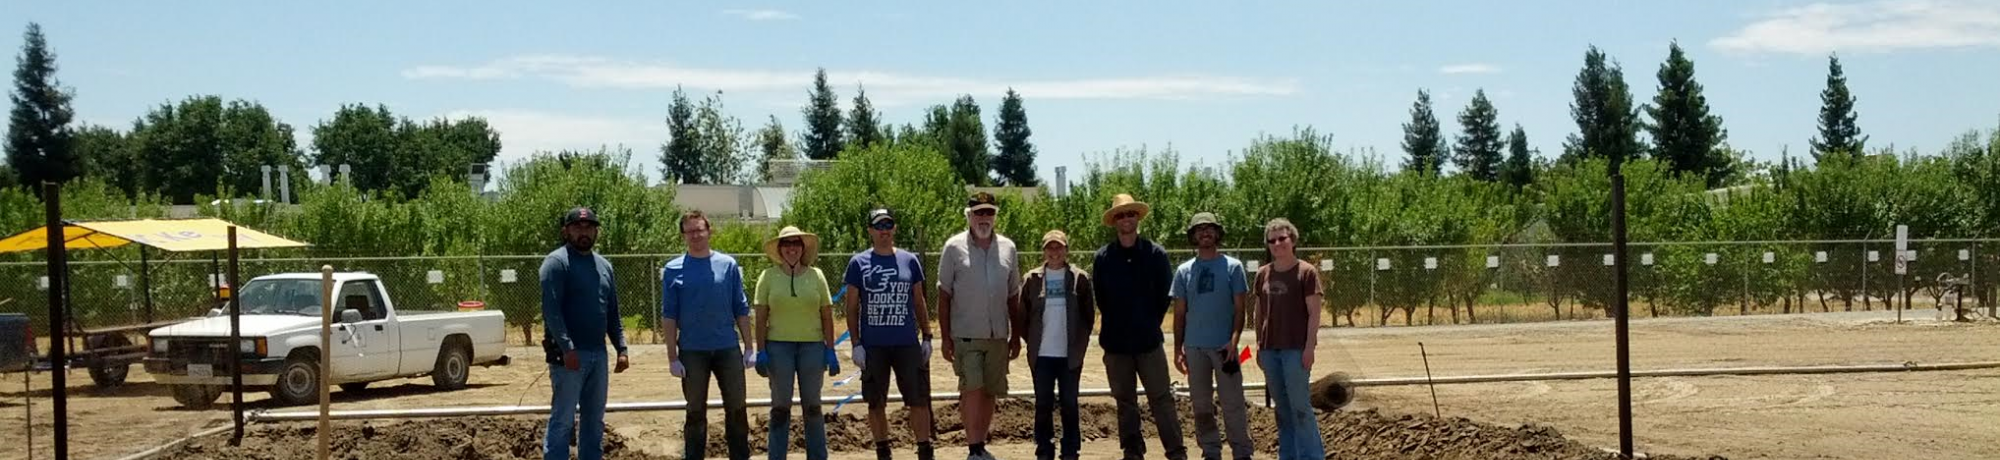 Researchers from biosolarization team posing in front of a bio-solarized plot of land